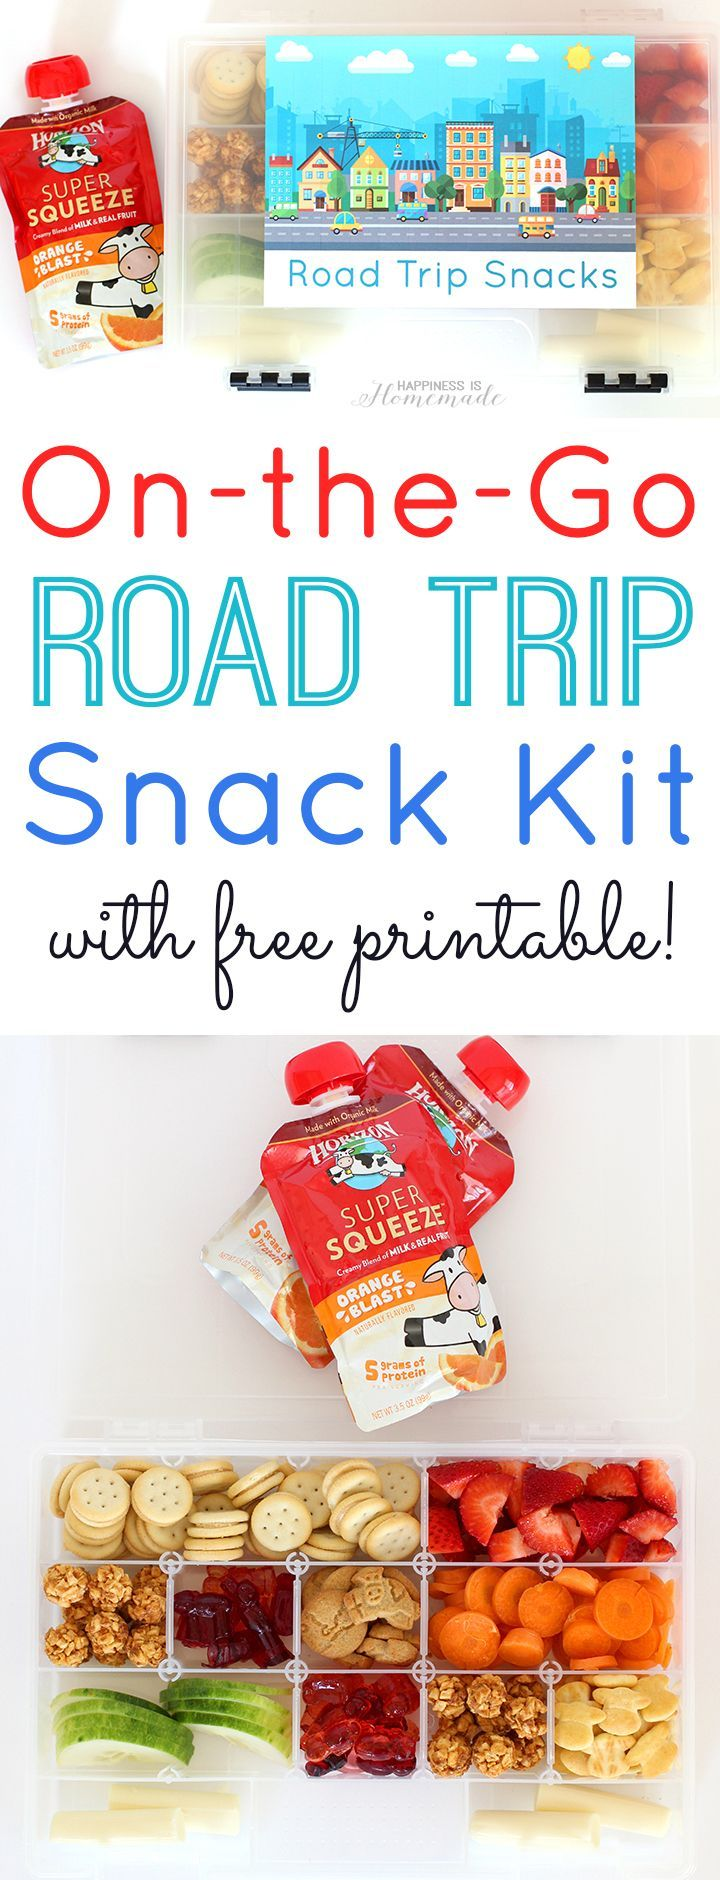 On-the-Go Road Trip Snack Kit with @Horizon_Organic snacks #CuriousKids [ad] - Happiness is Homemade